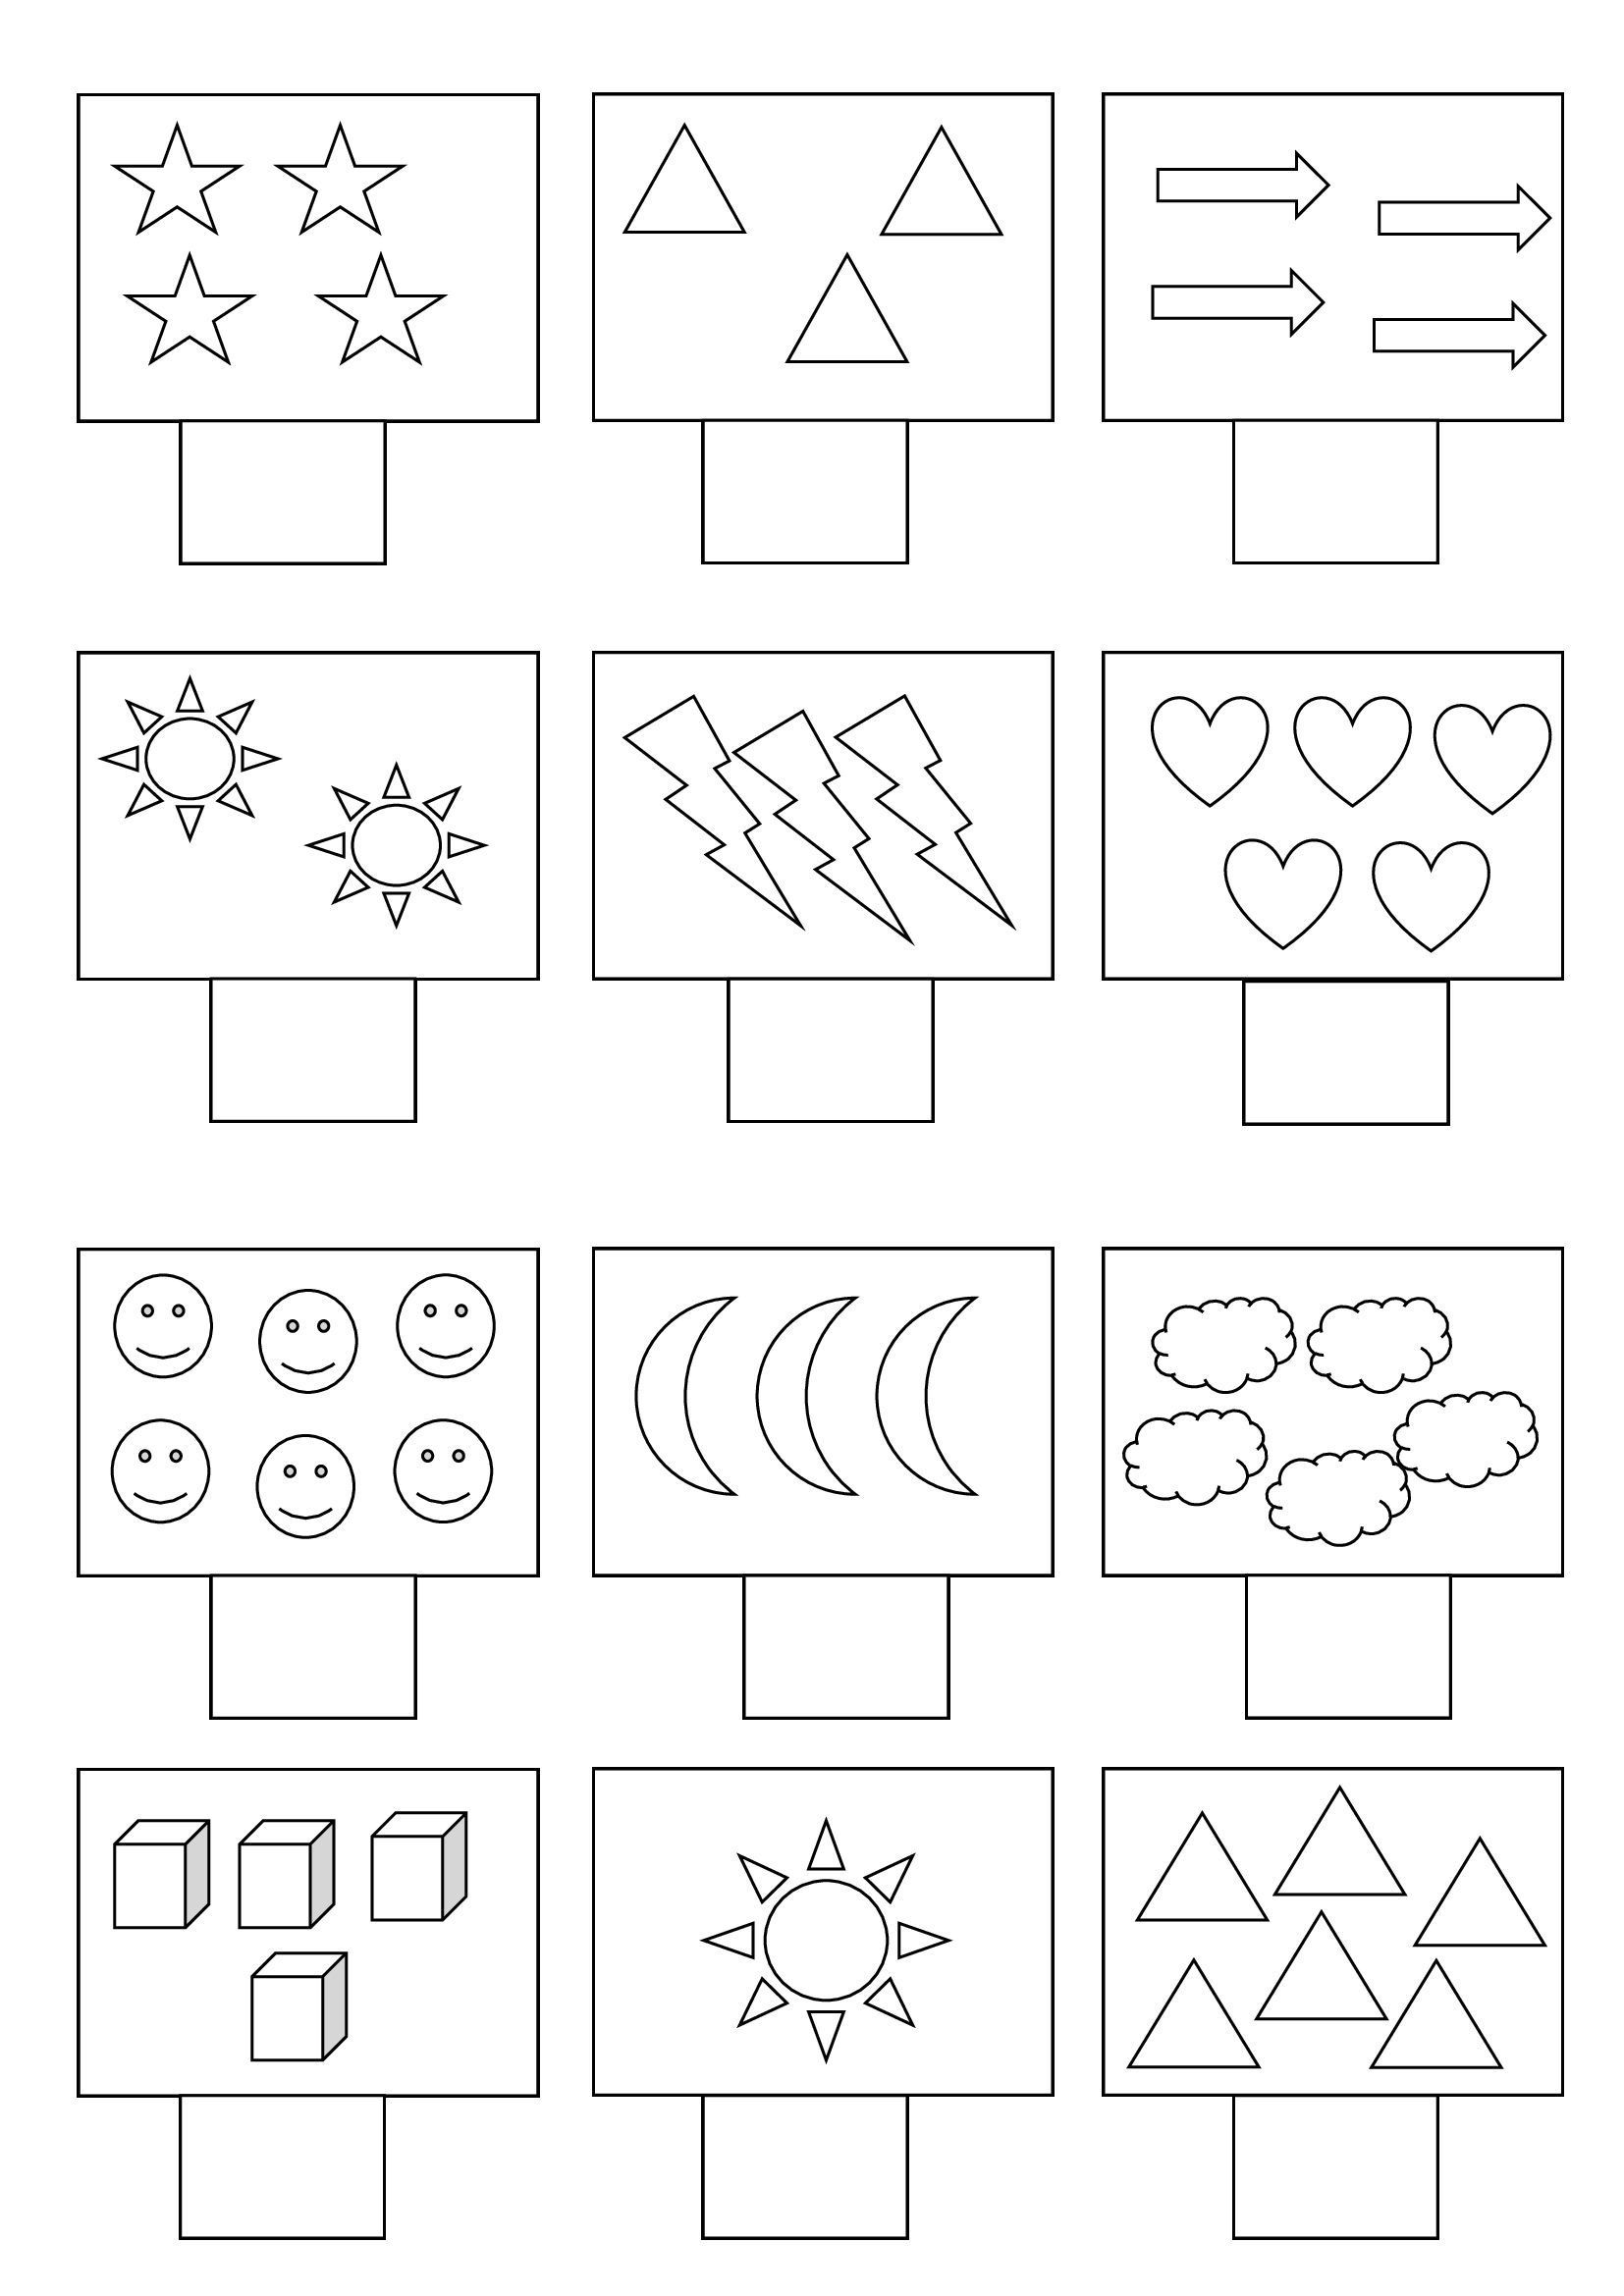 Krokotak Print Printables For Kids Kindergarten Math Worksheets Kids Math Worksheets Preschool Math Worksheets